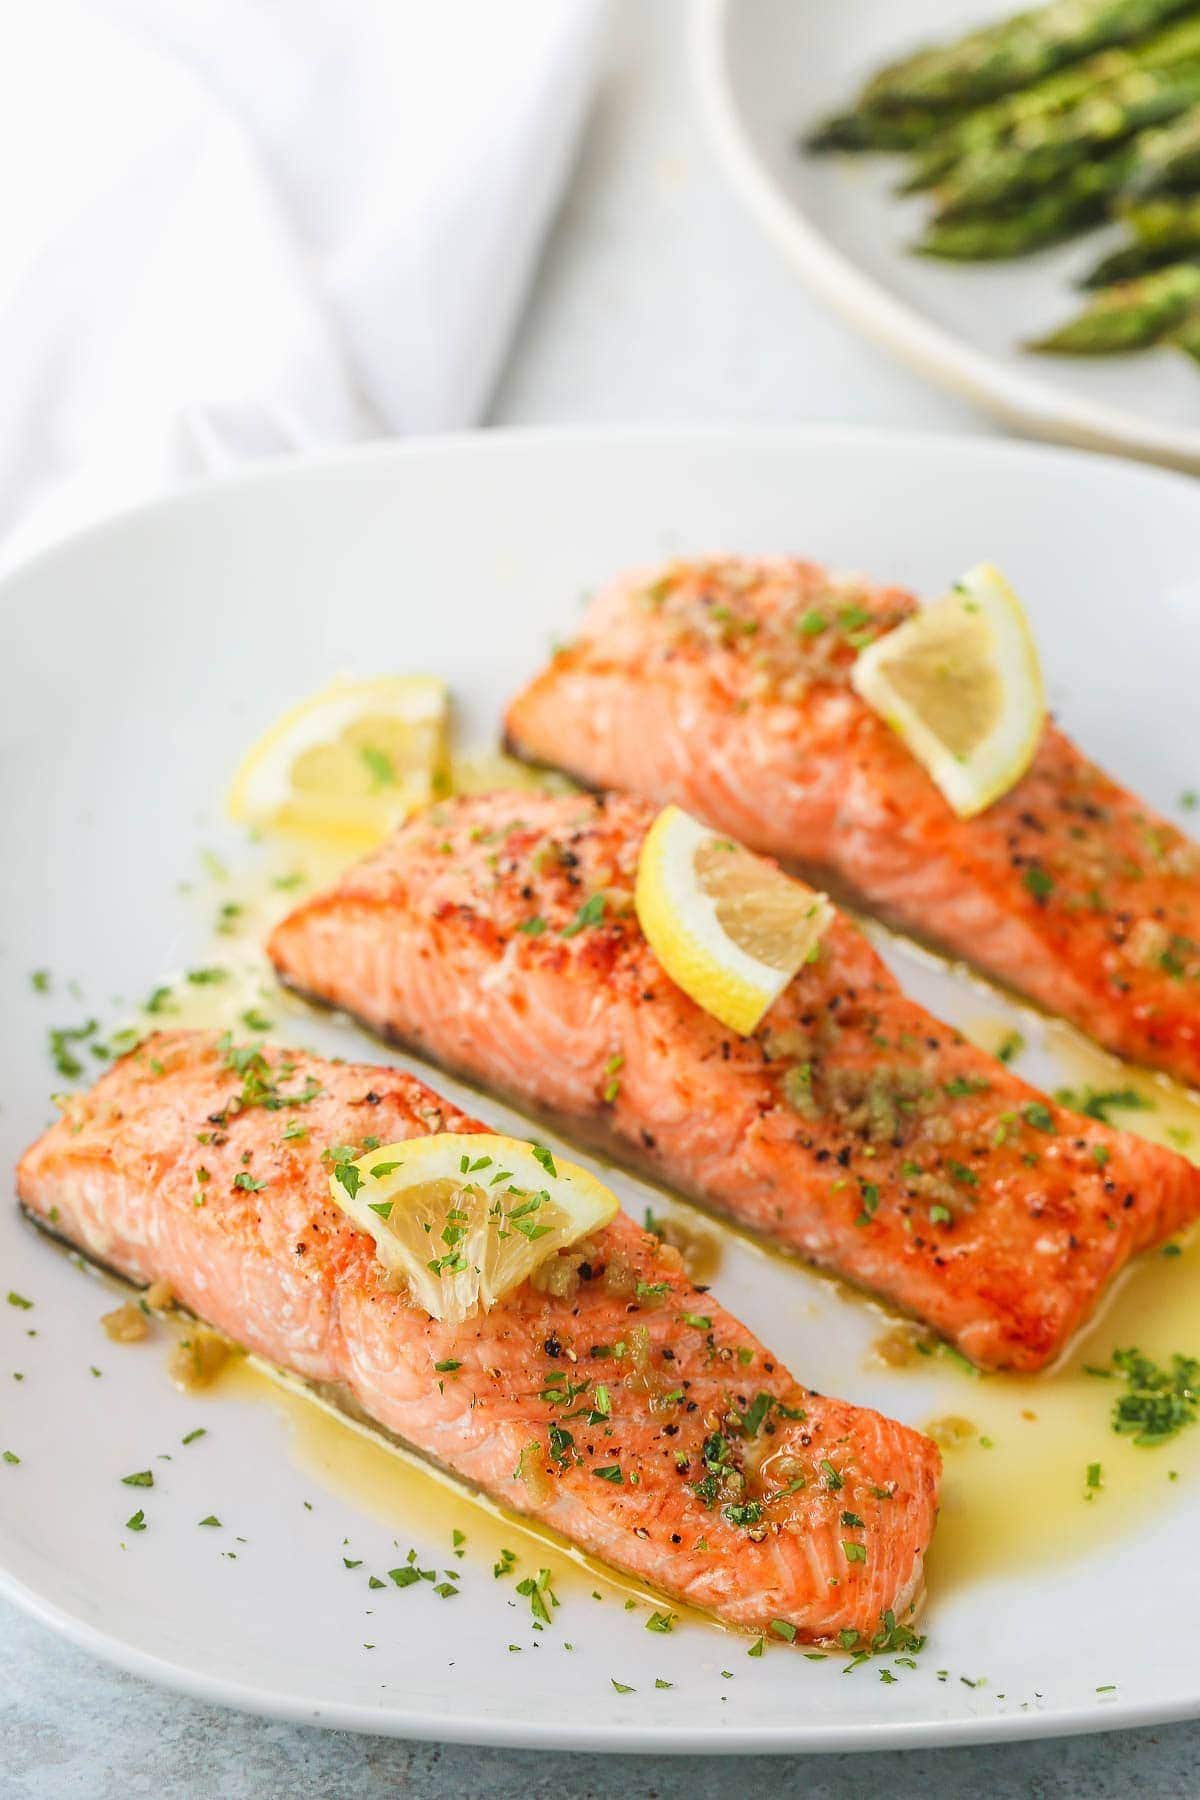 Three air fryer salmon fillets topped with a slice of lemon and chopped parsley on a white plate.